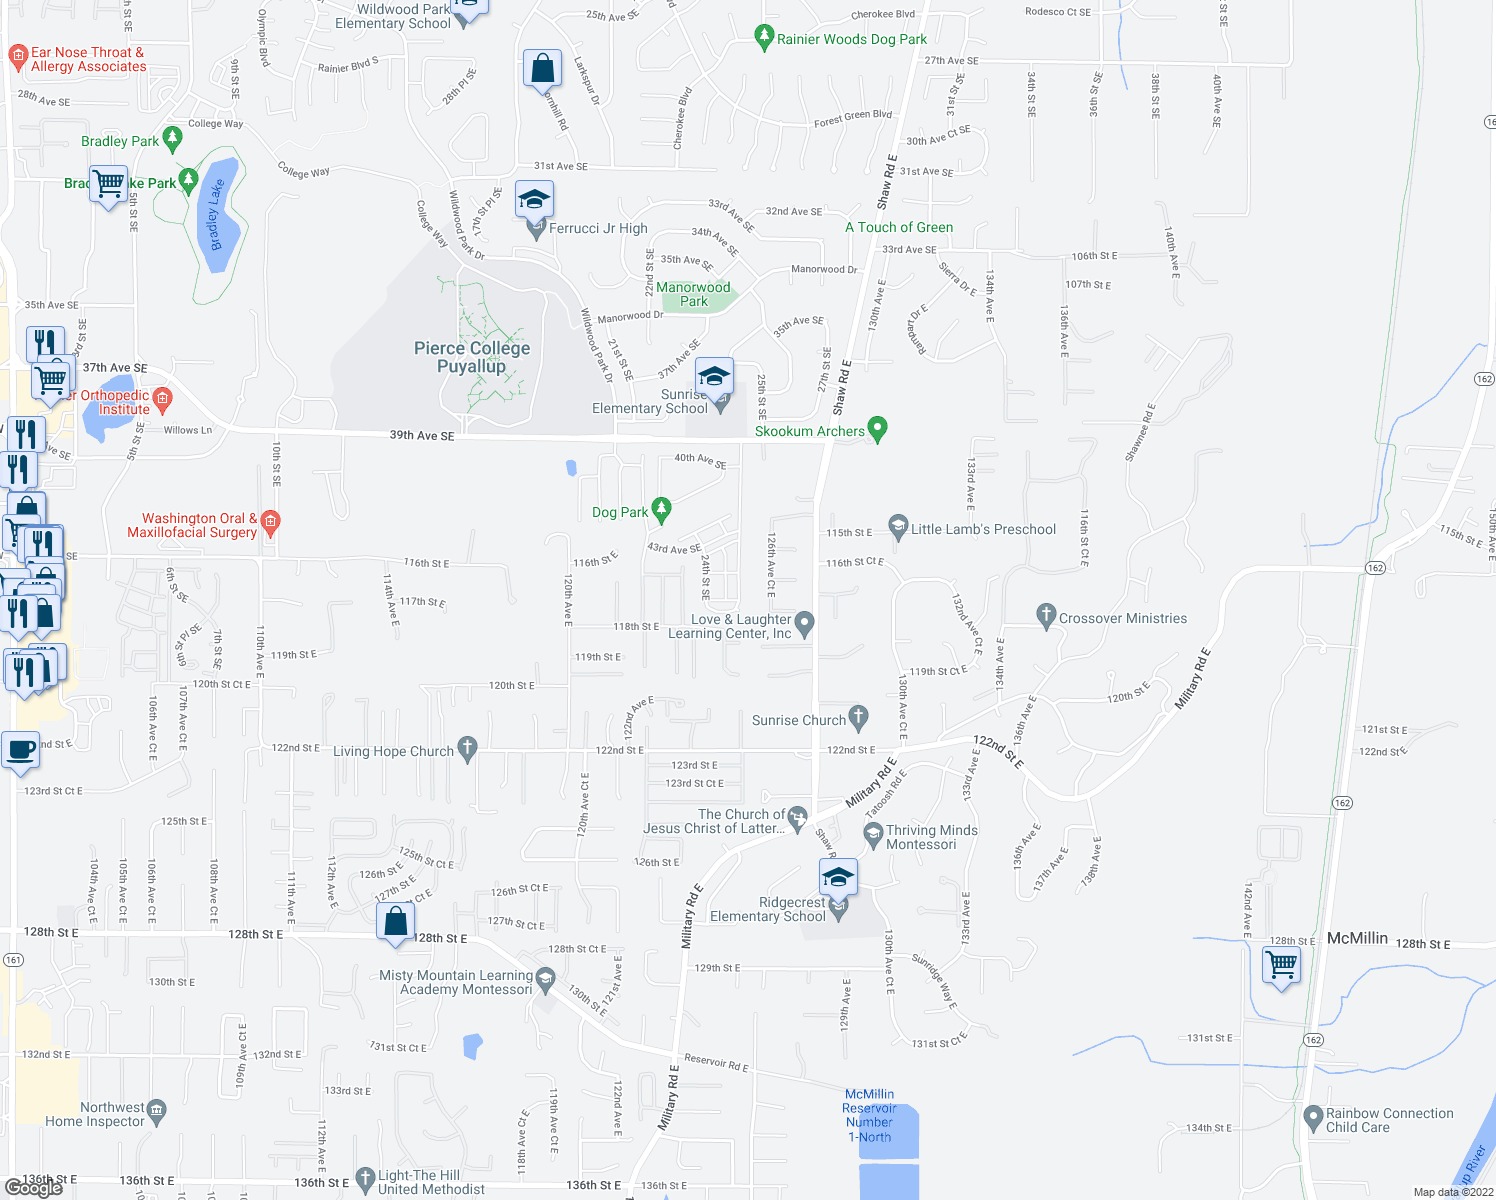 map of restaurants, bars, coffee shops, grocery stores, and more near 2416 46th Ave SE in Puyallup